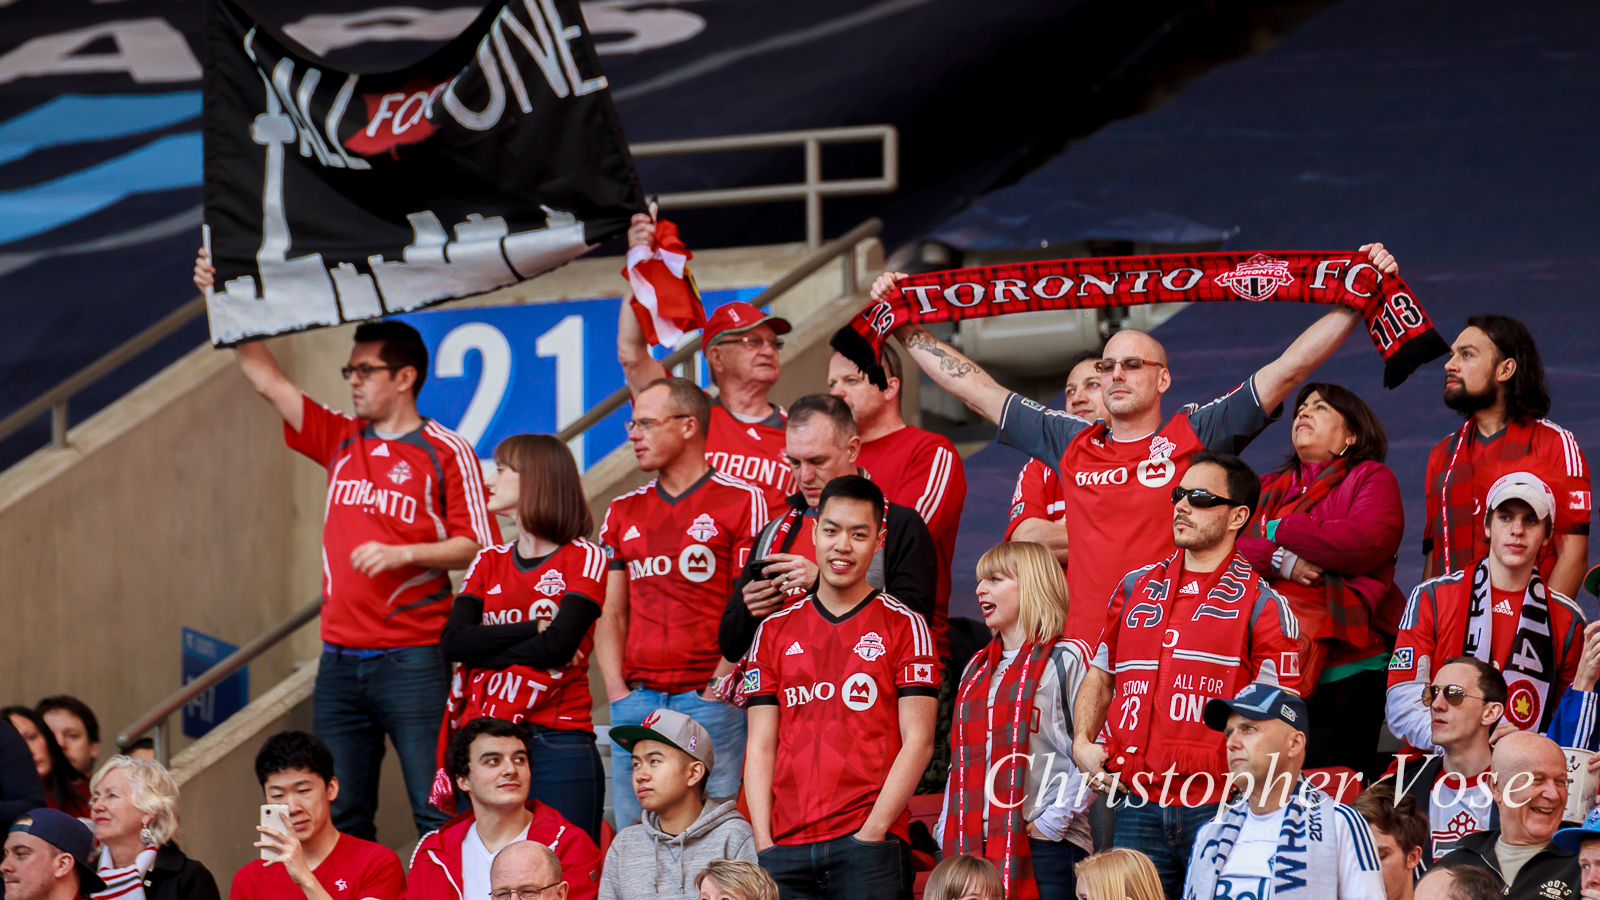 2015-03-07 Toronto FC Supporters.jpg